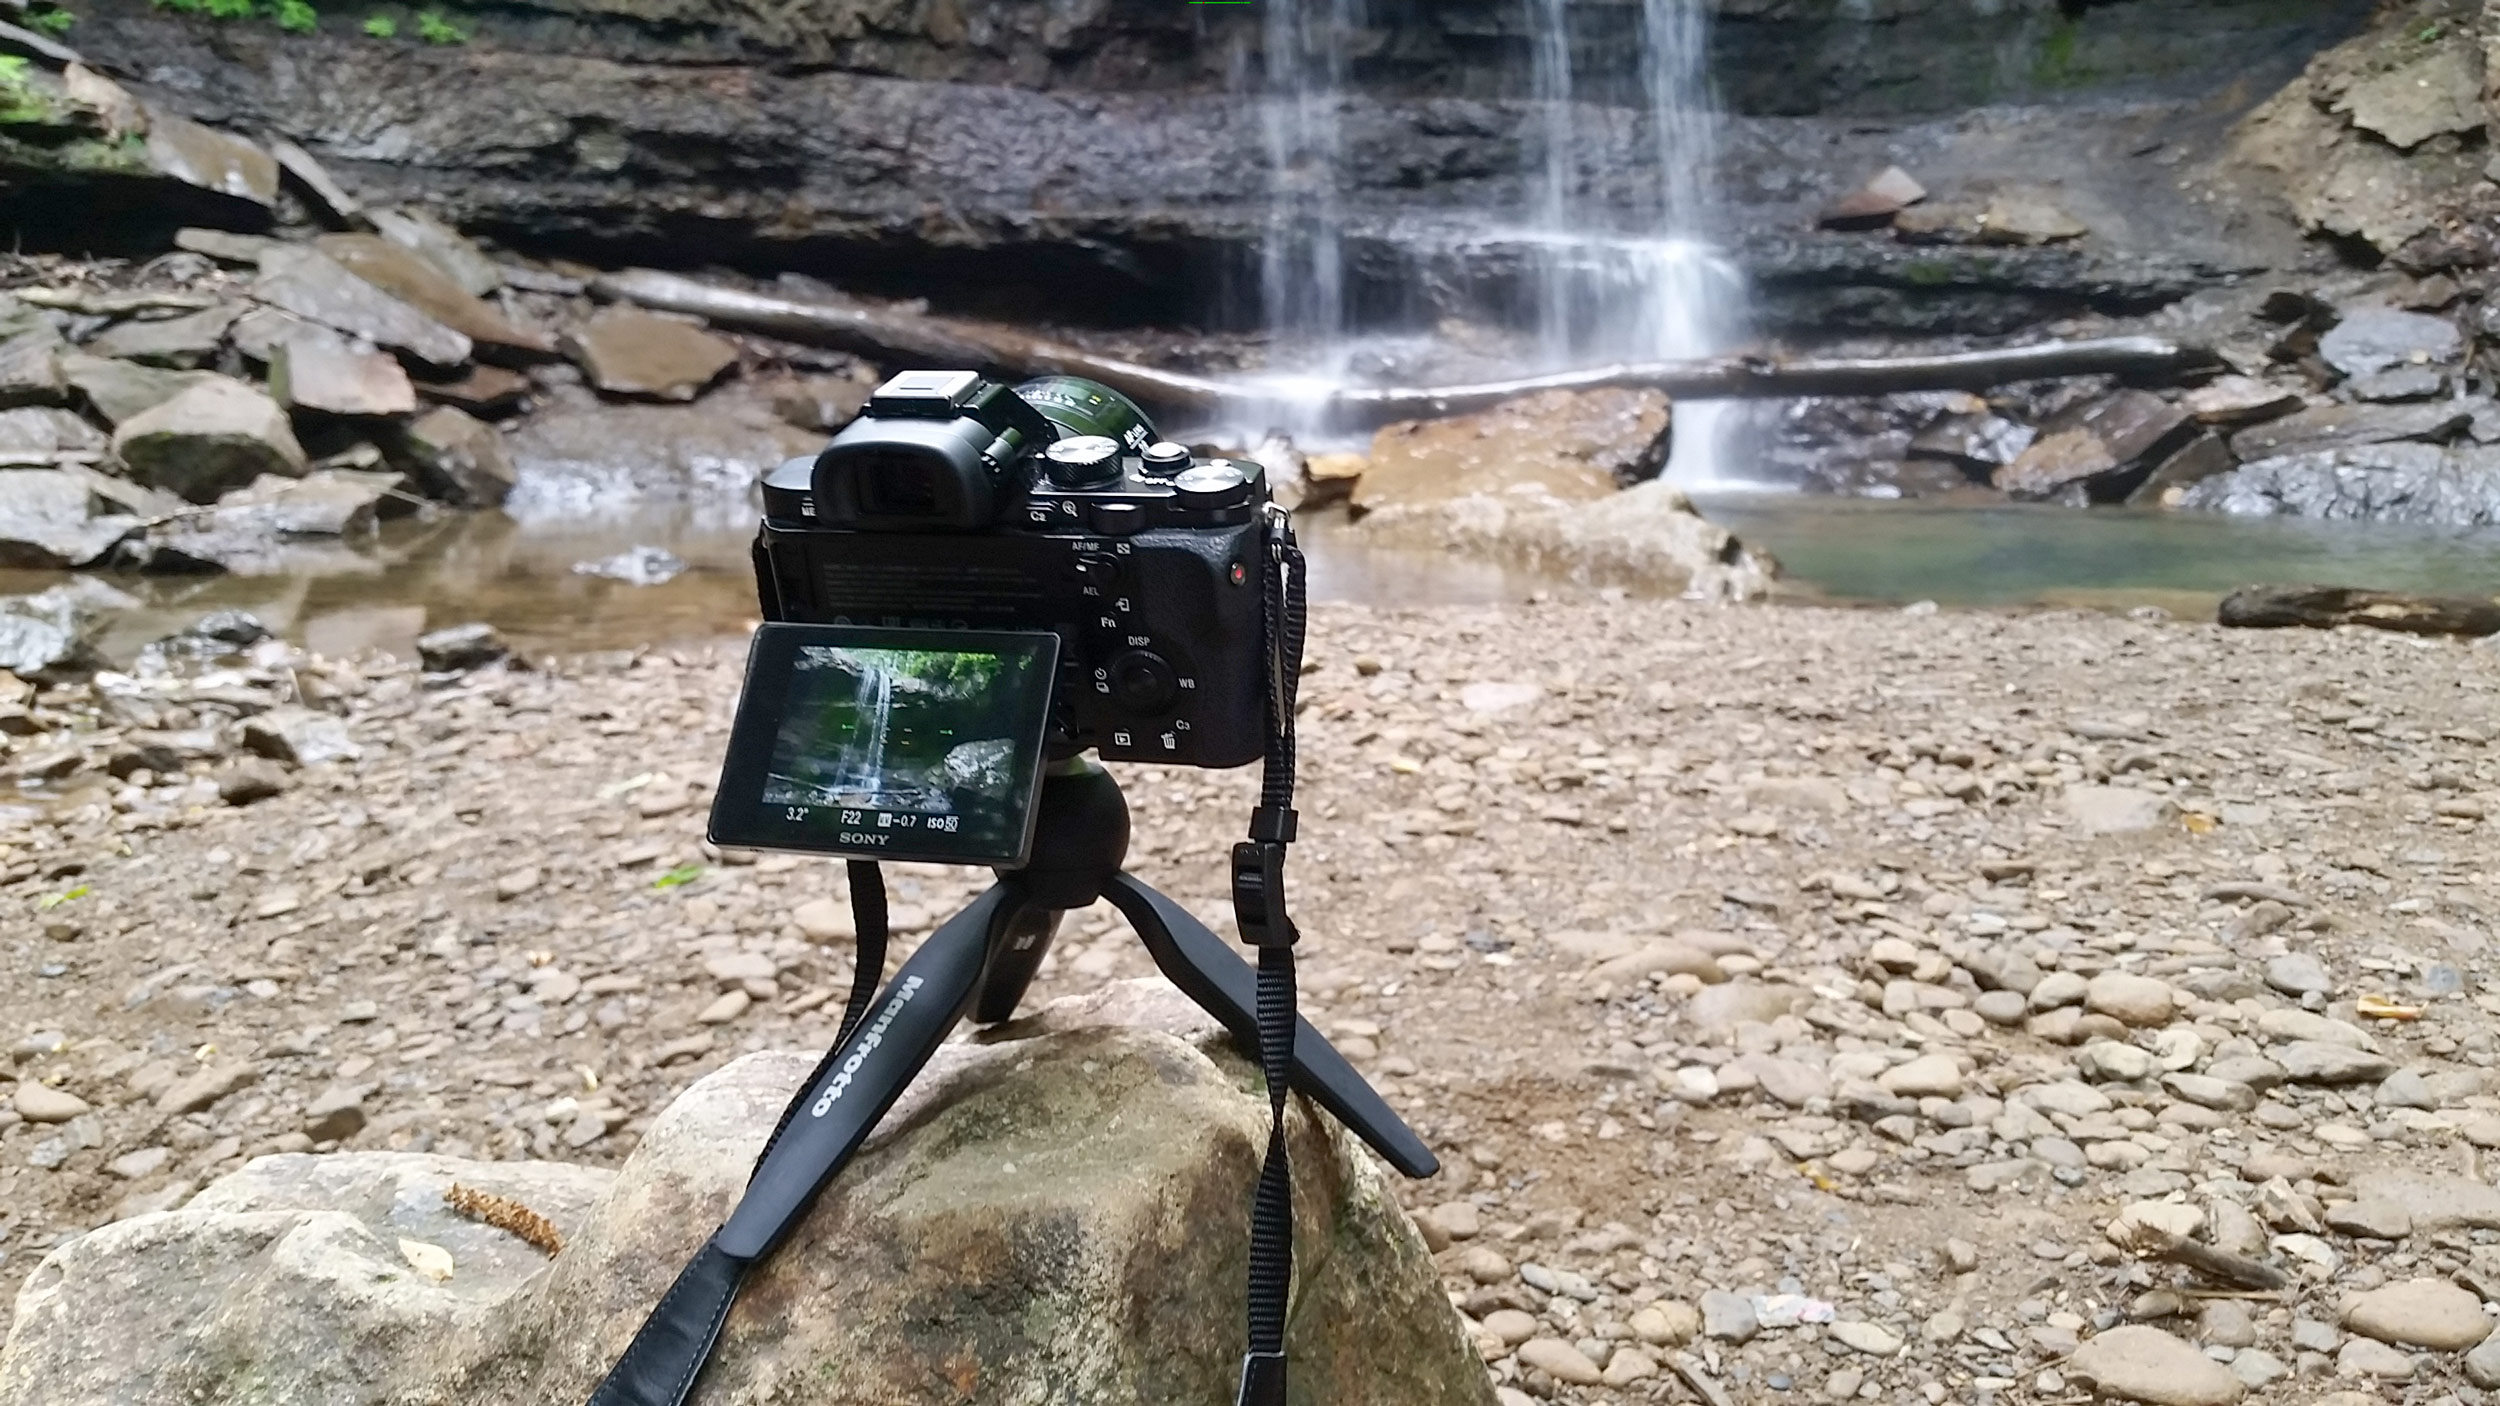 Why I love the Manfrotto PIXI Mini Tripod